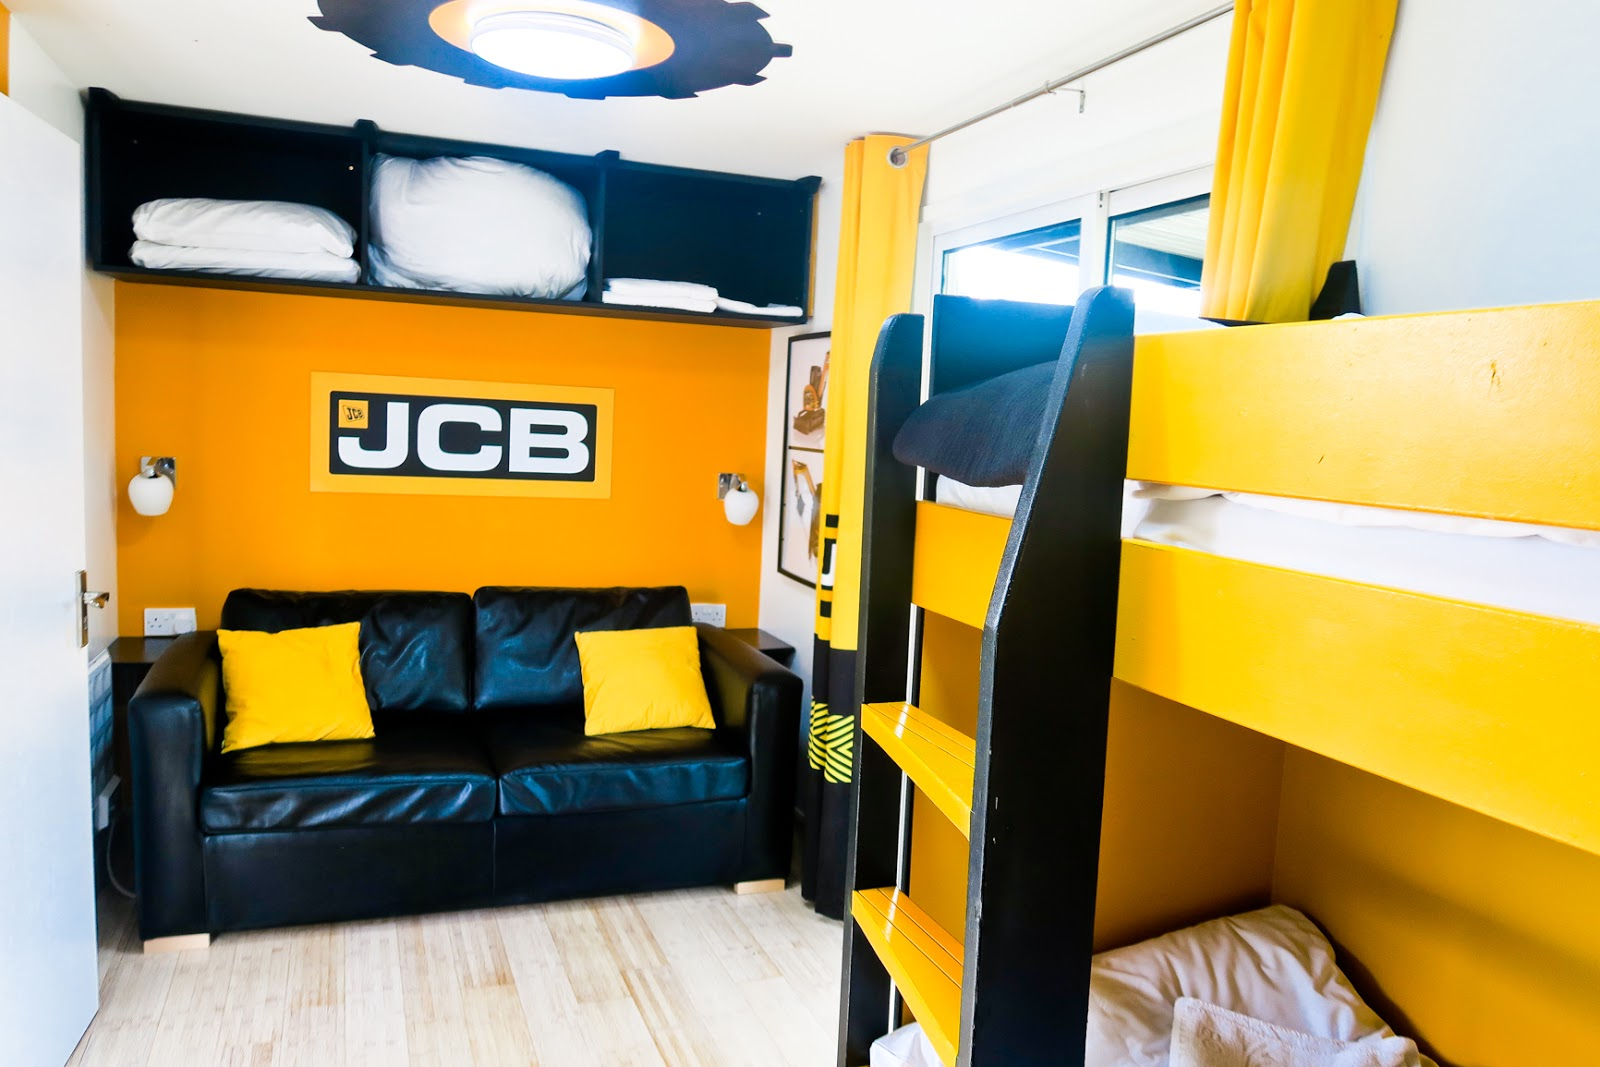 jcb construction cabins, gullivers land, gullivers land milton keynes, gullivers land jcb cabins, gullivers land dinosaur and farm park, jcb accomodation